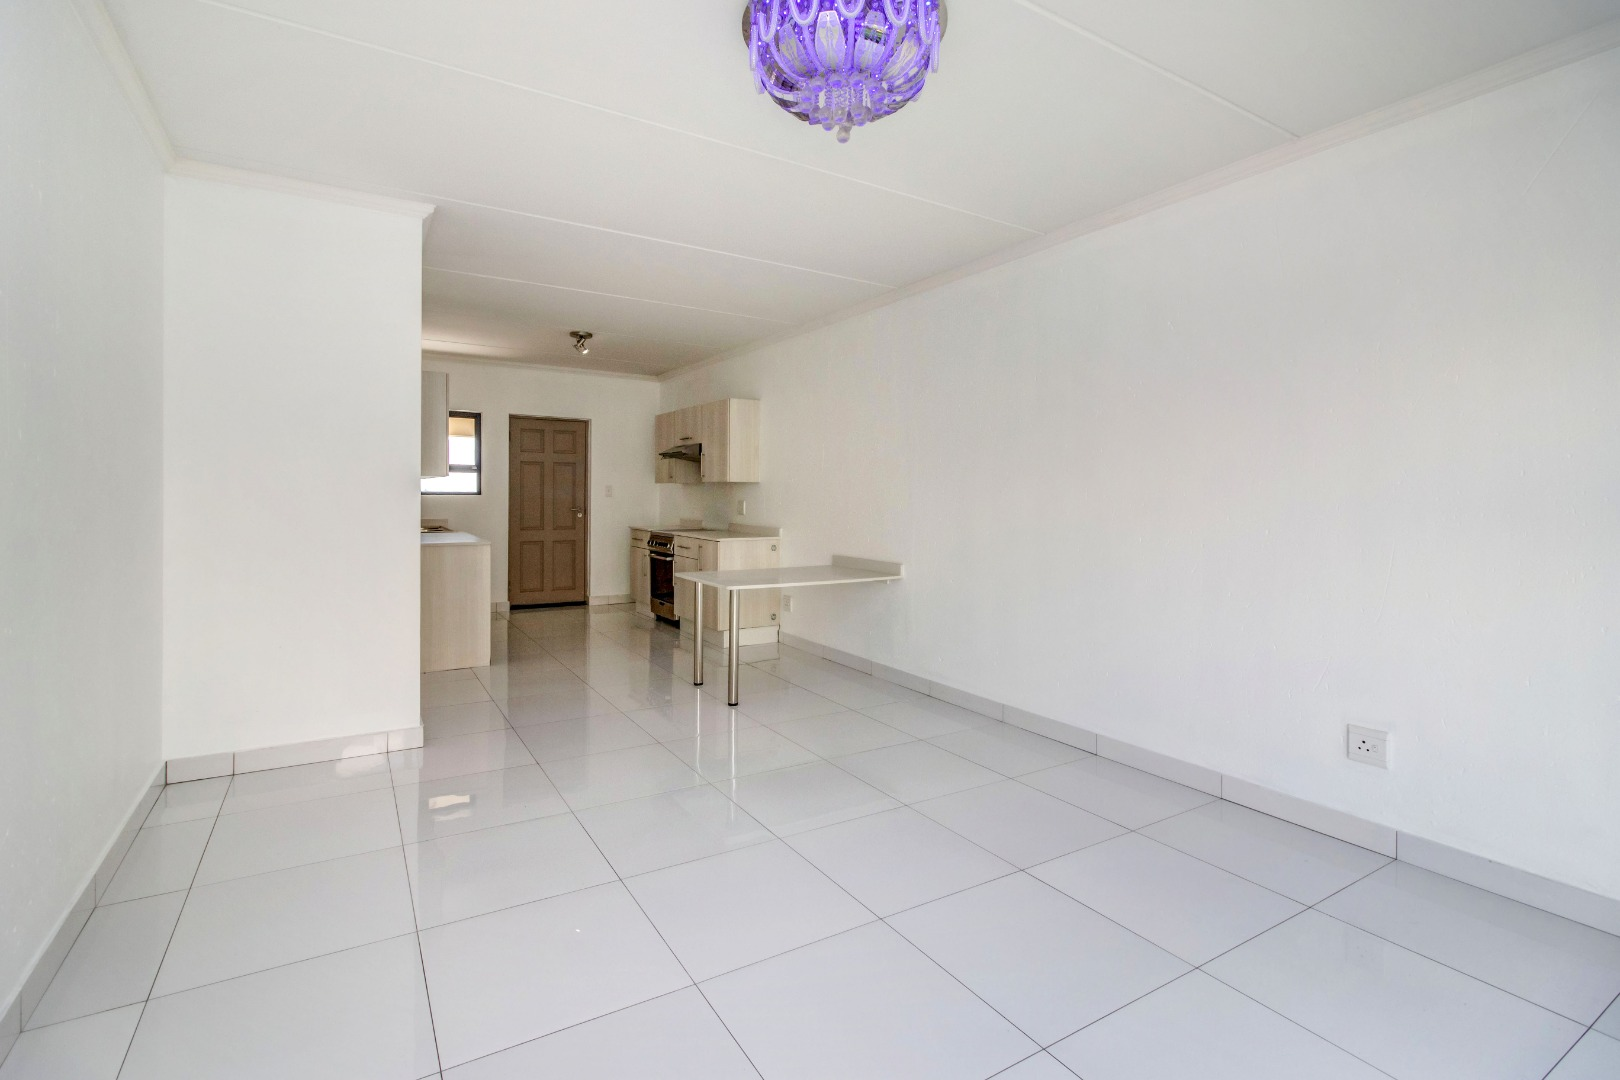 2 Bedroom Apartment / Flat For Sale in Beverley